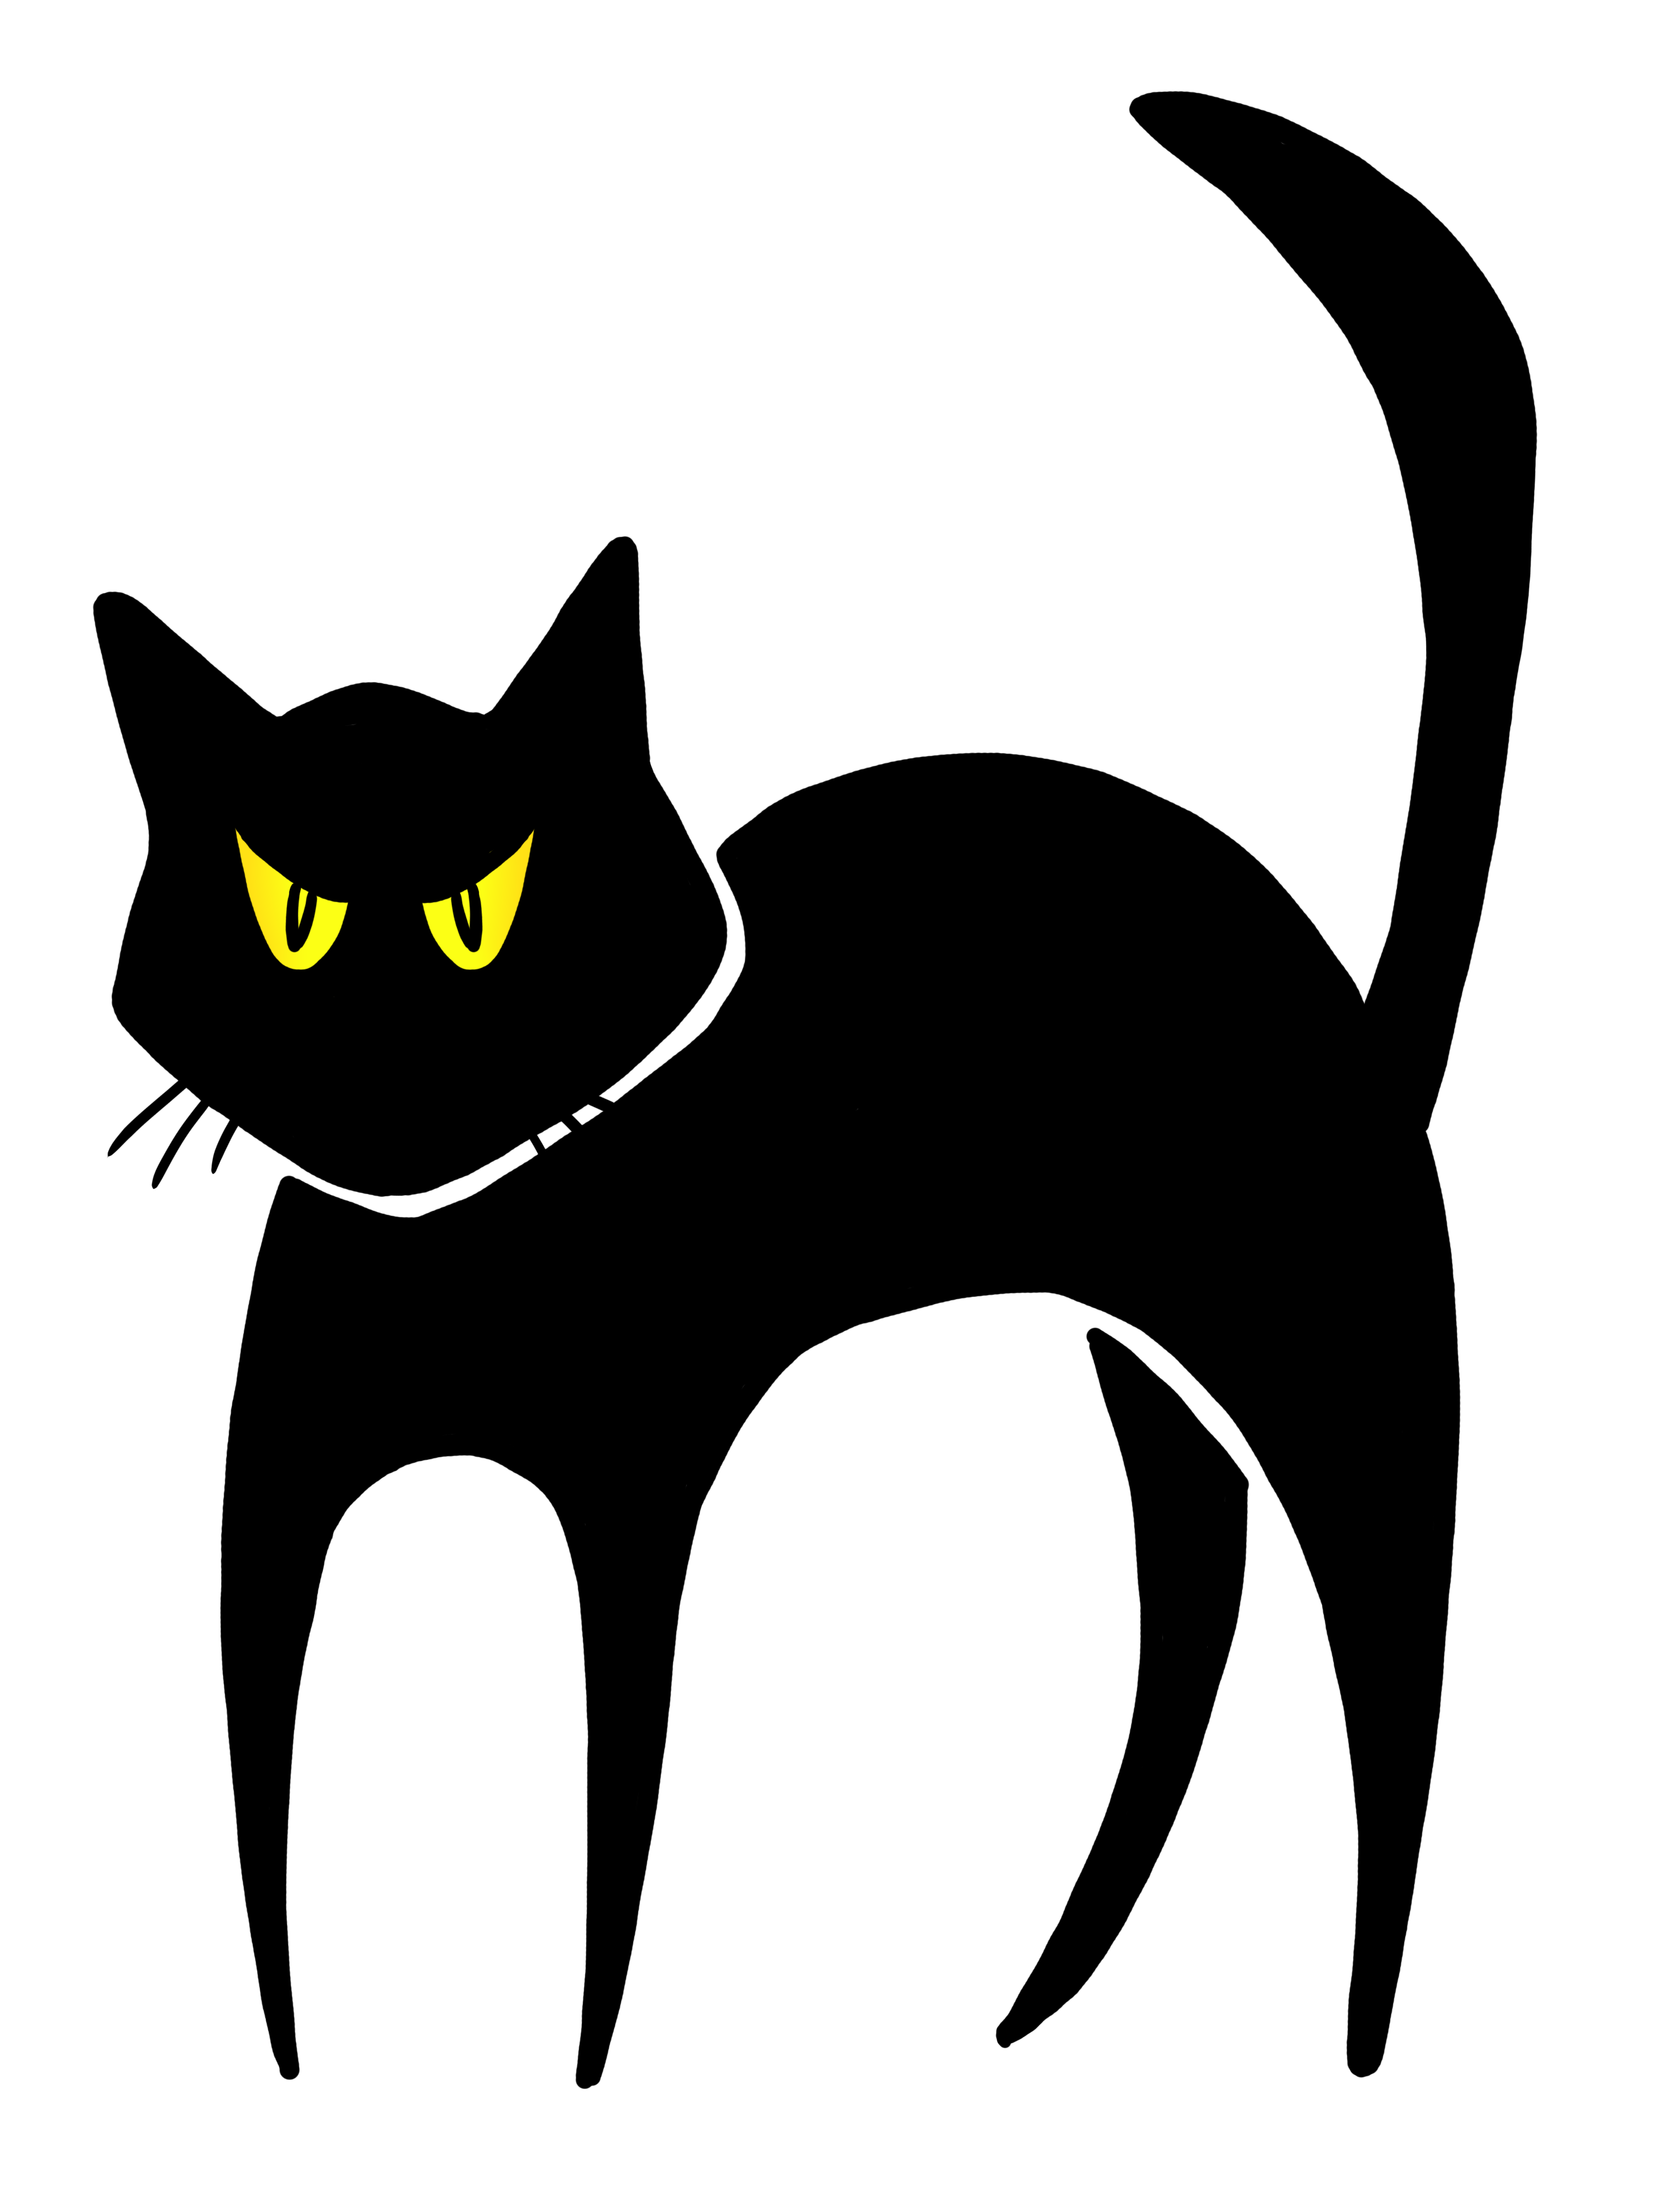 Halloween Black Cat Clipart | Clipart Panda - Free Clipart Images ... banner black and white library